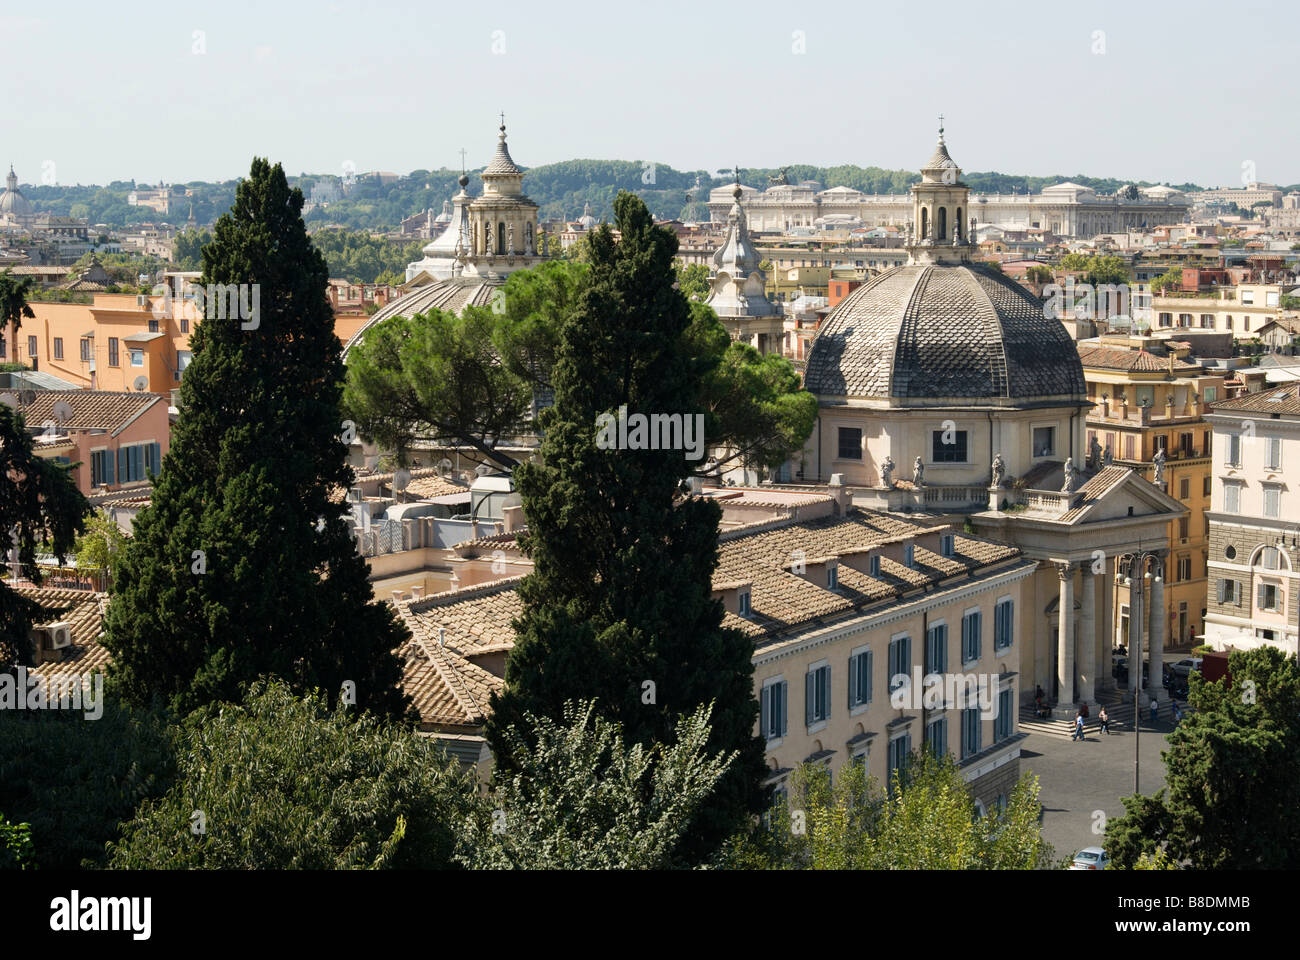 Churches in rome - Stock Image